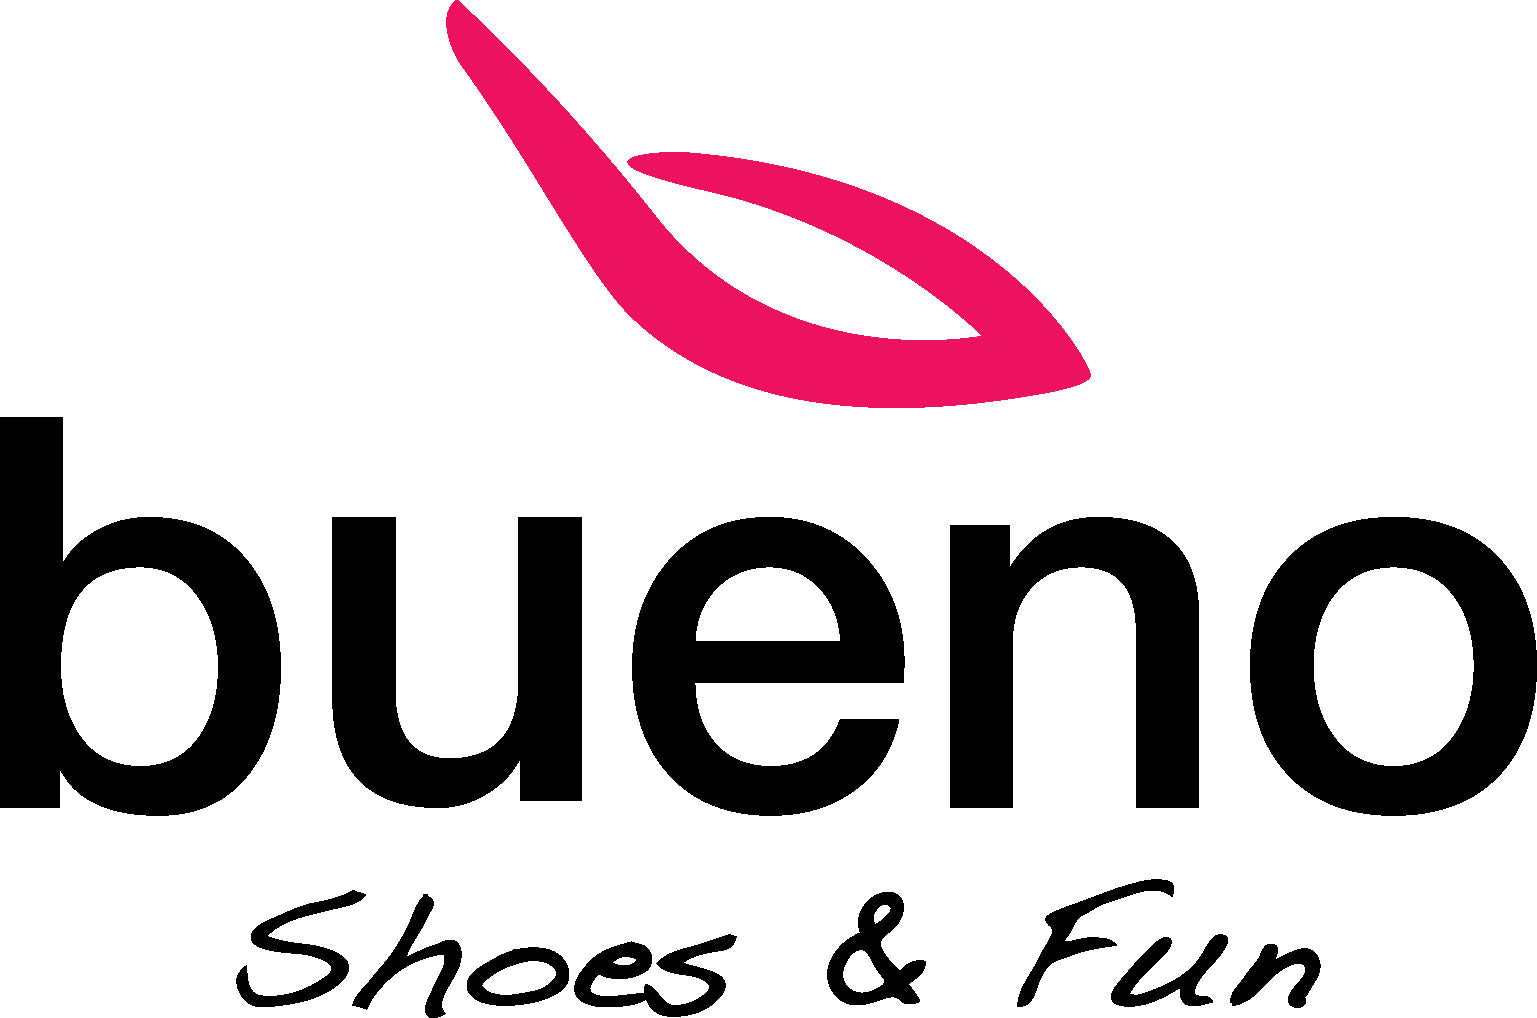 bueno shoes on sale